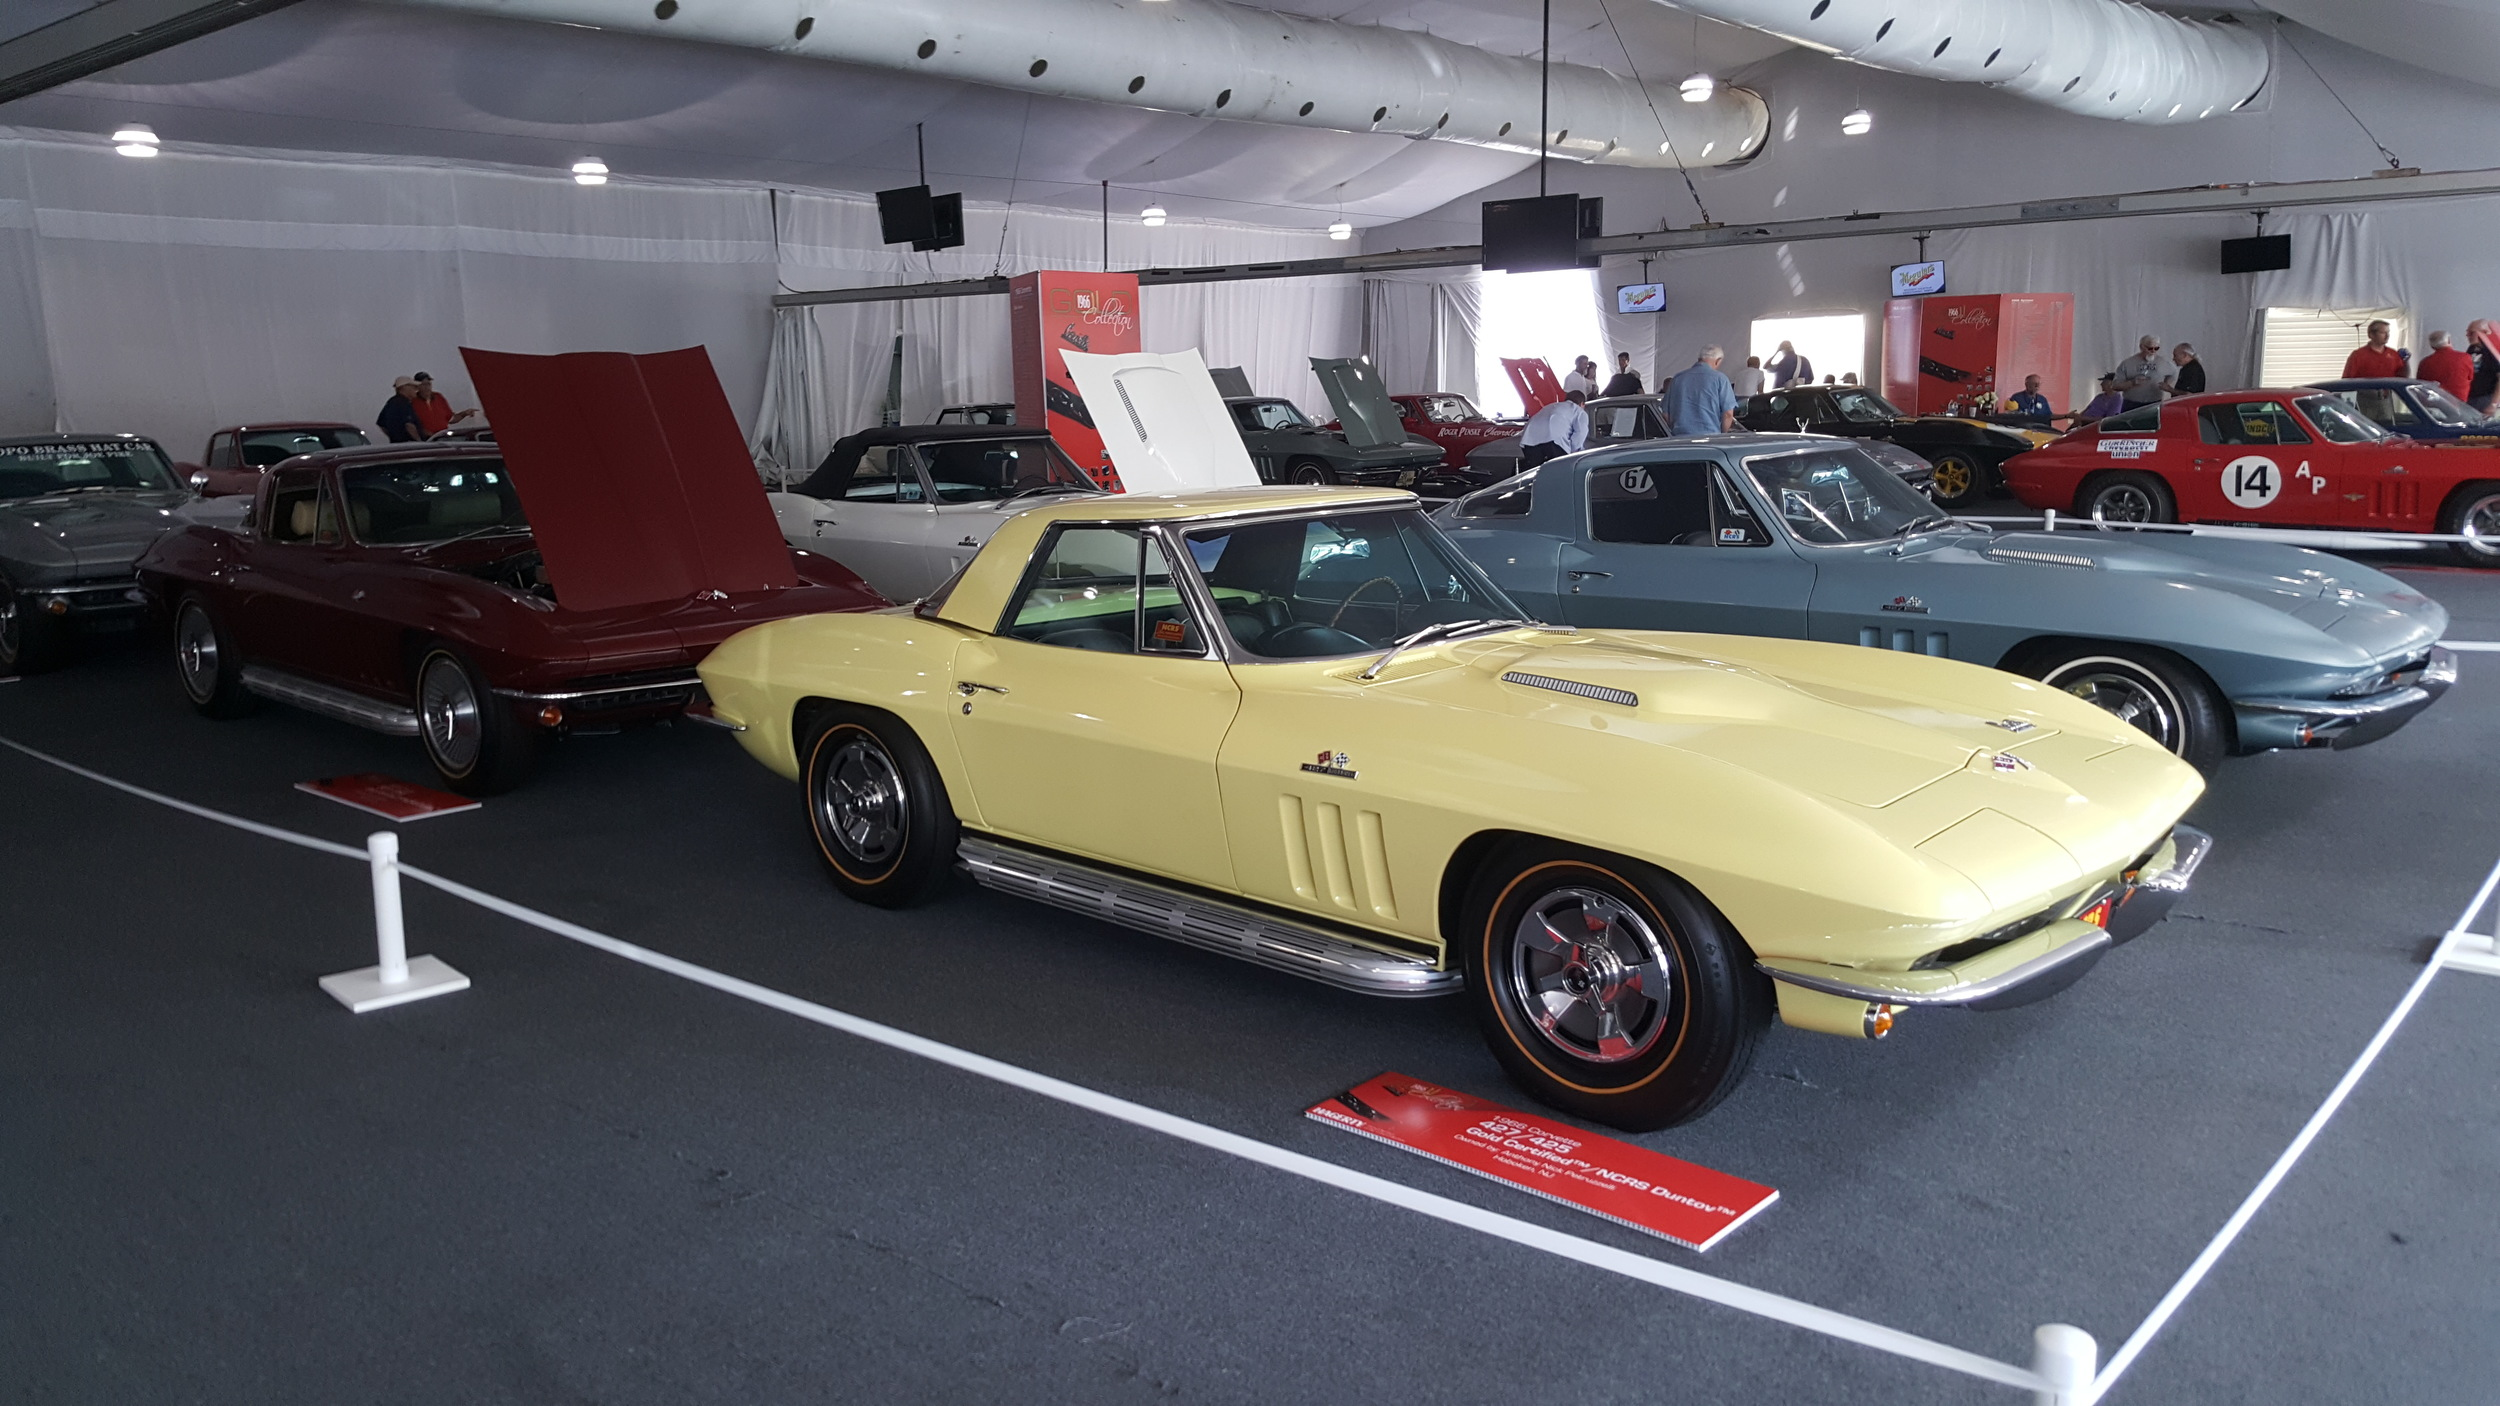 The 1966 Vette is 50 years old and were featured this year